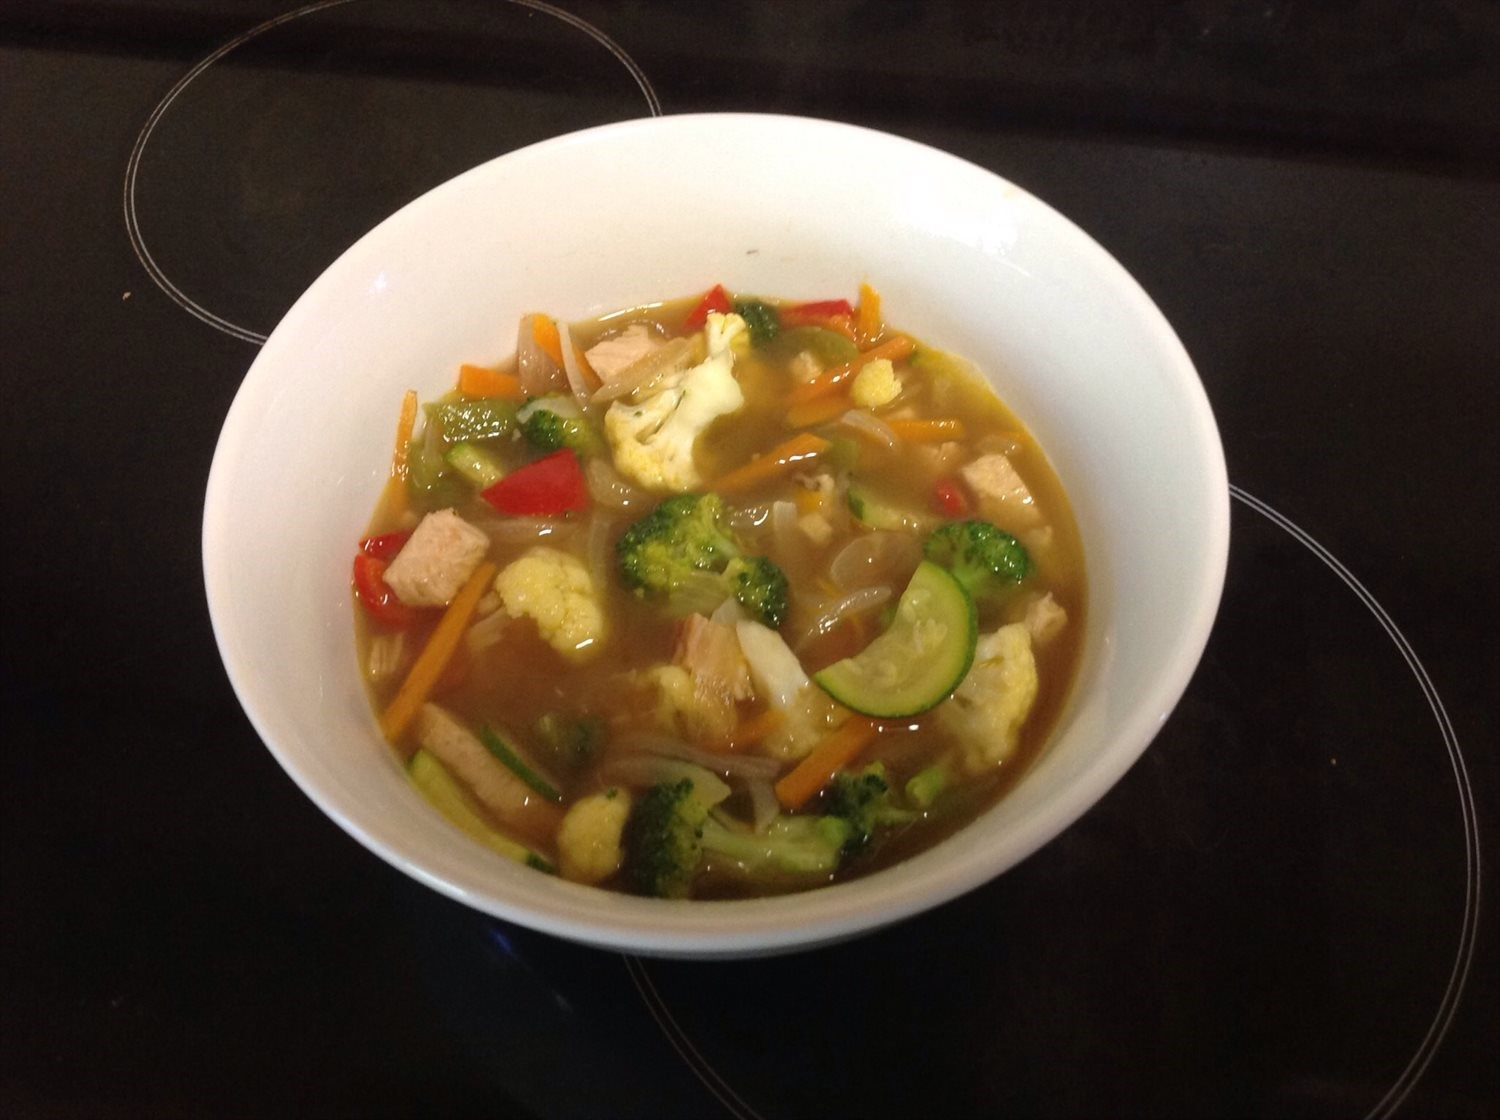 Chicken and Vege soup